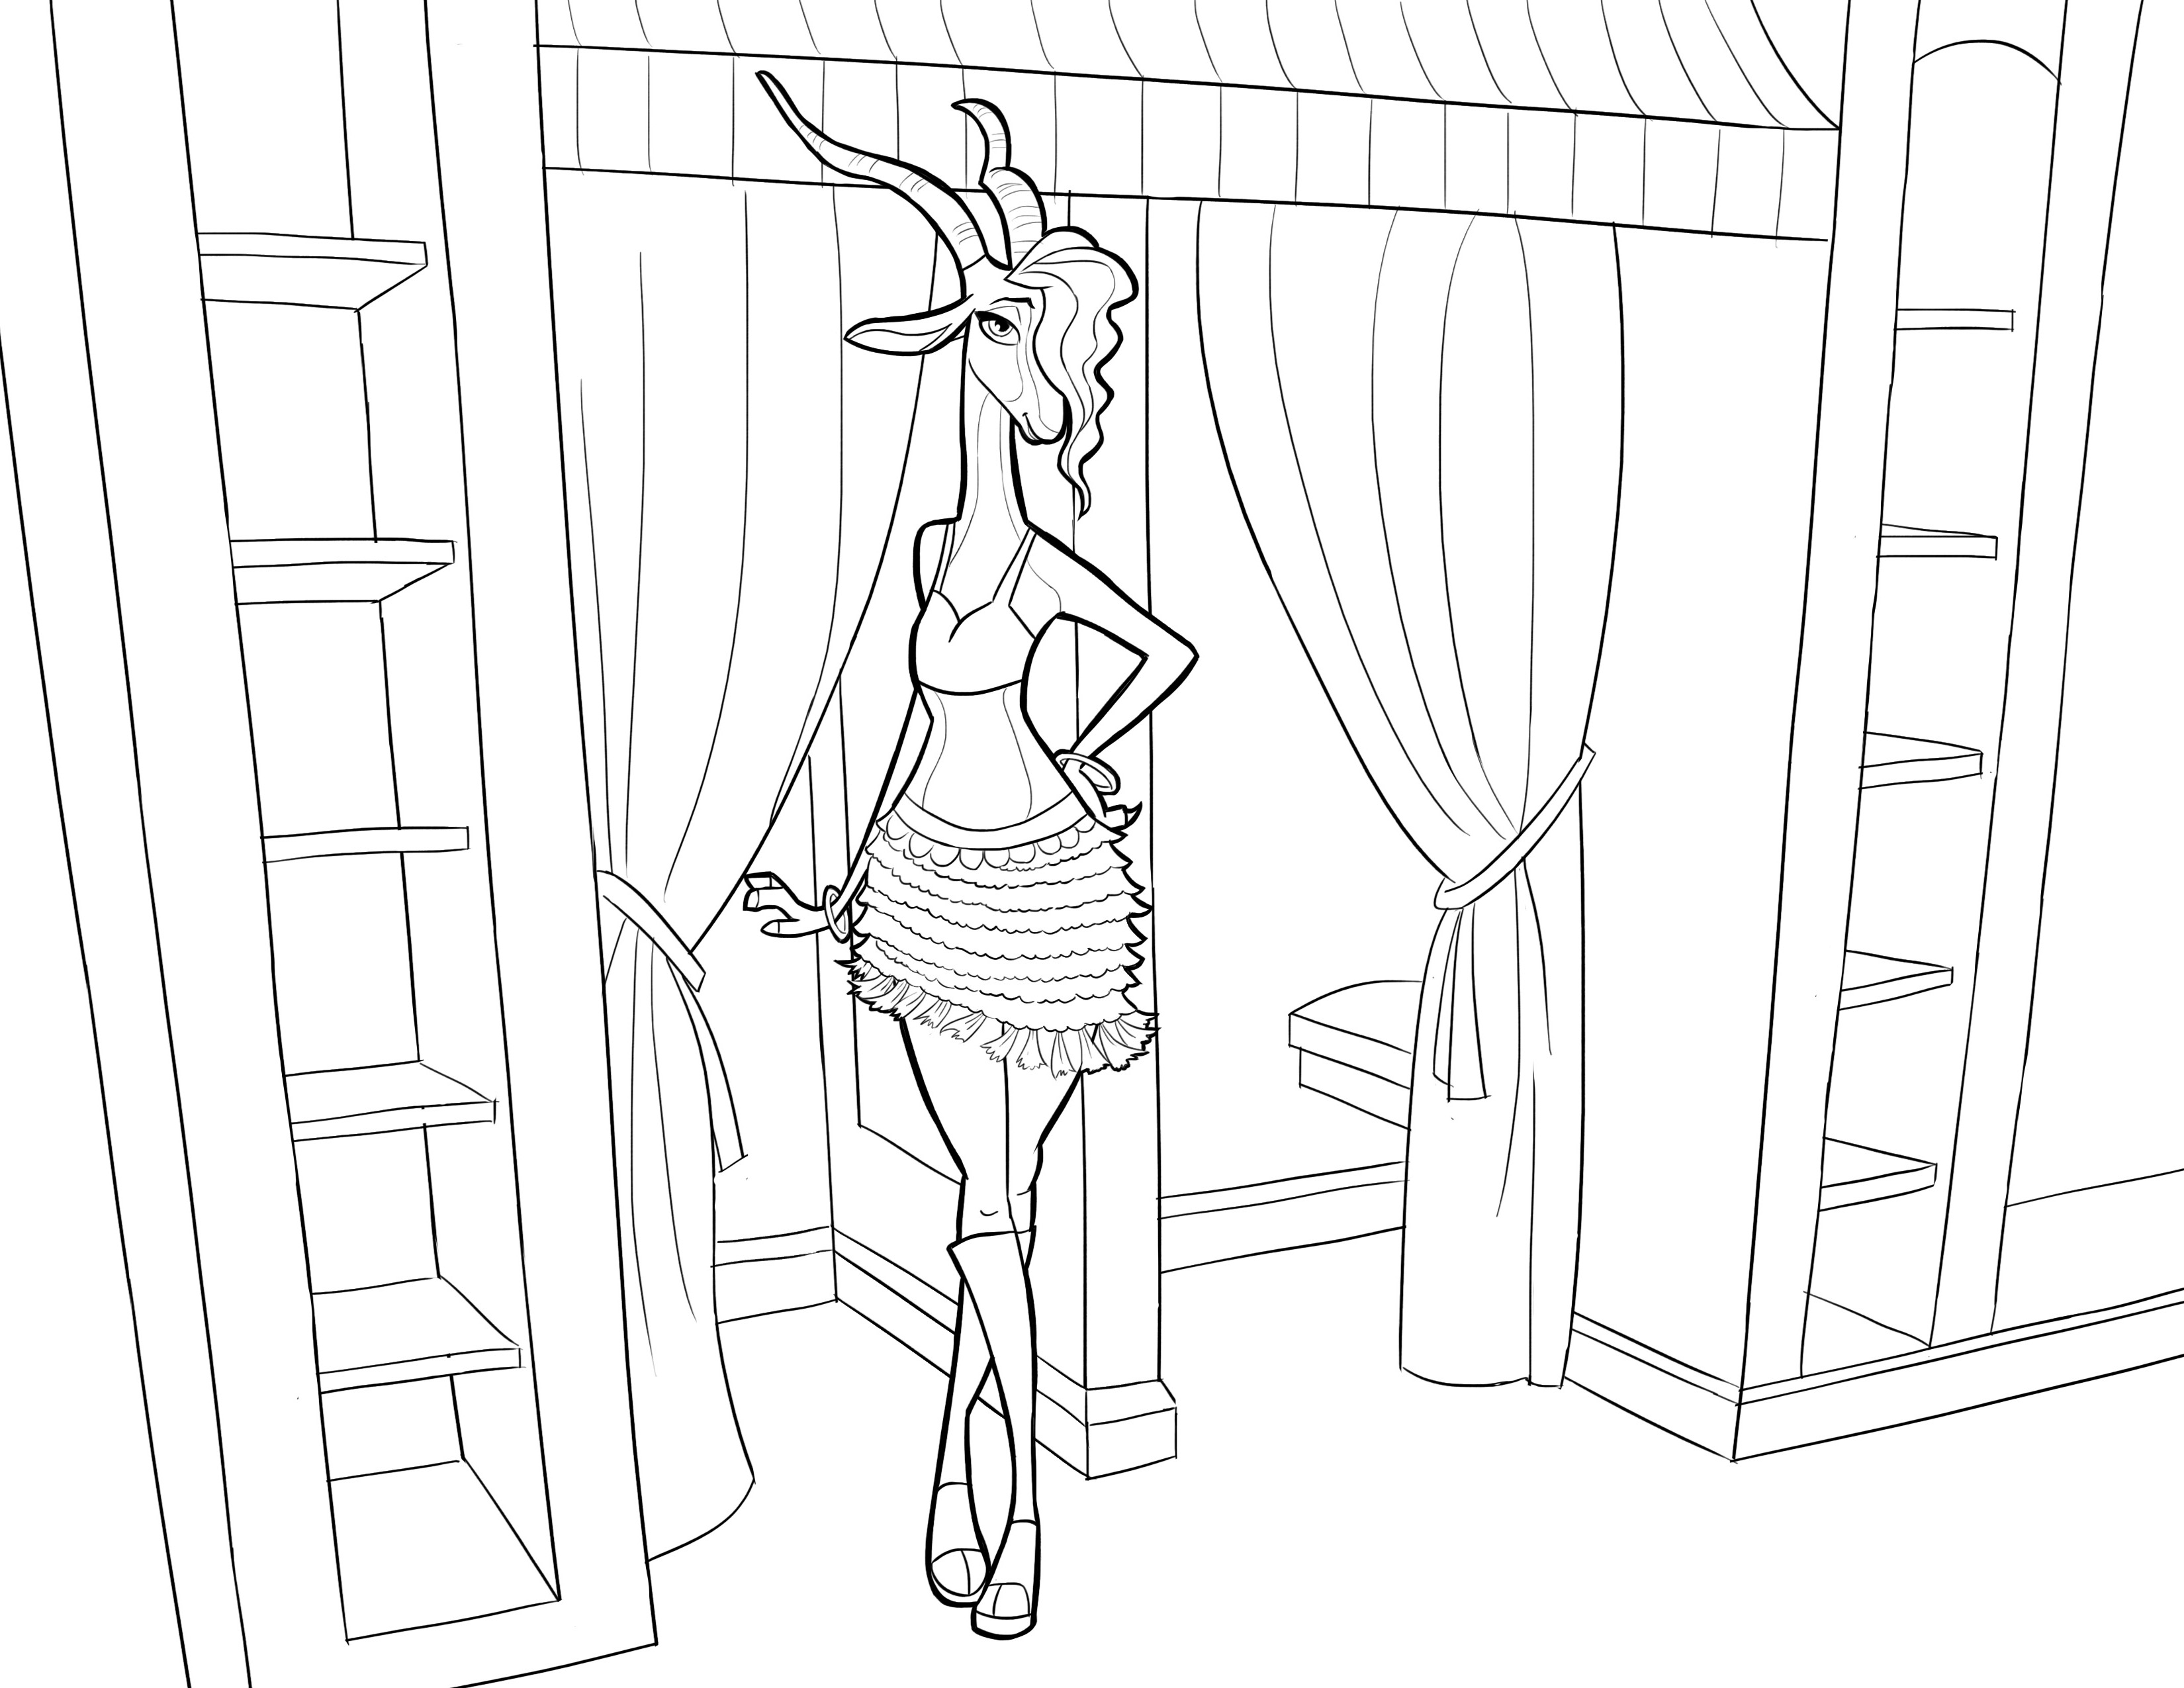 Free Zootopia coloring page to download : the Beautiful Gazelle